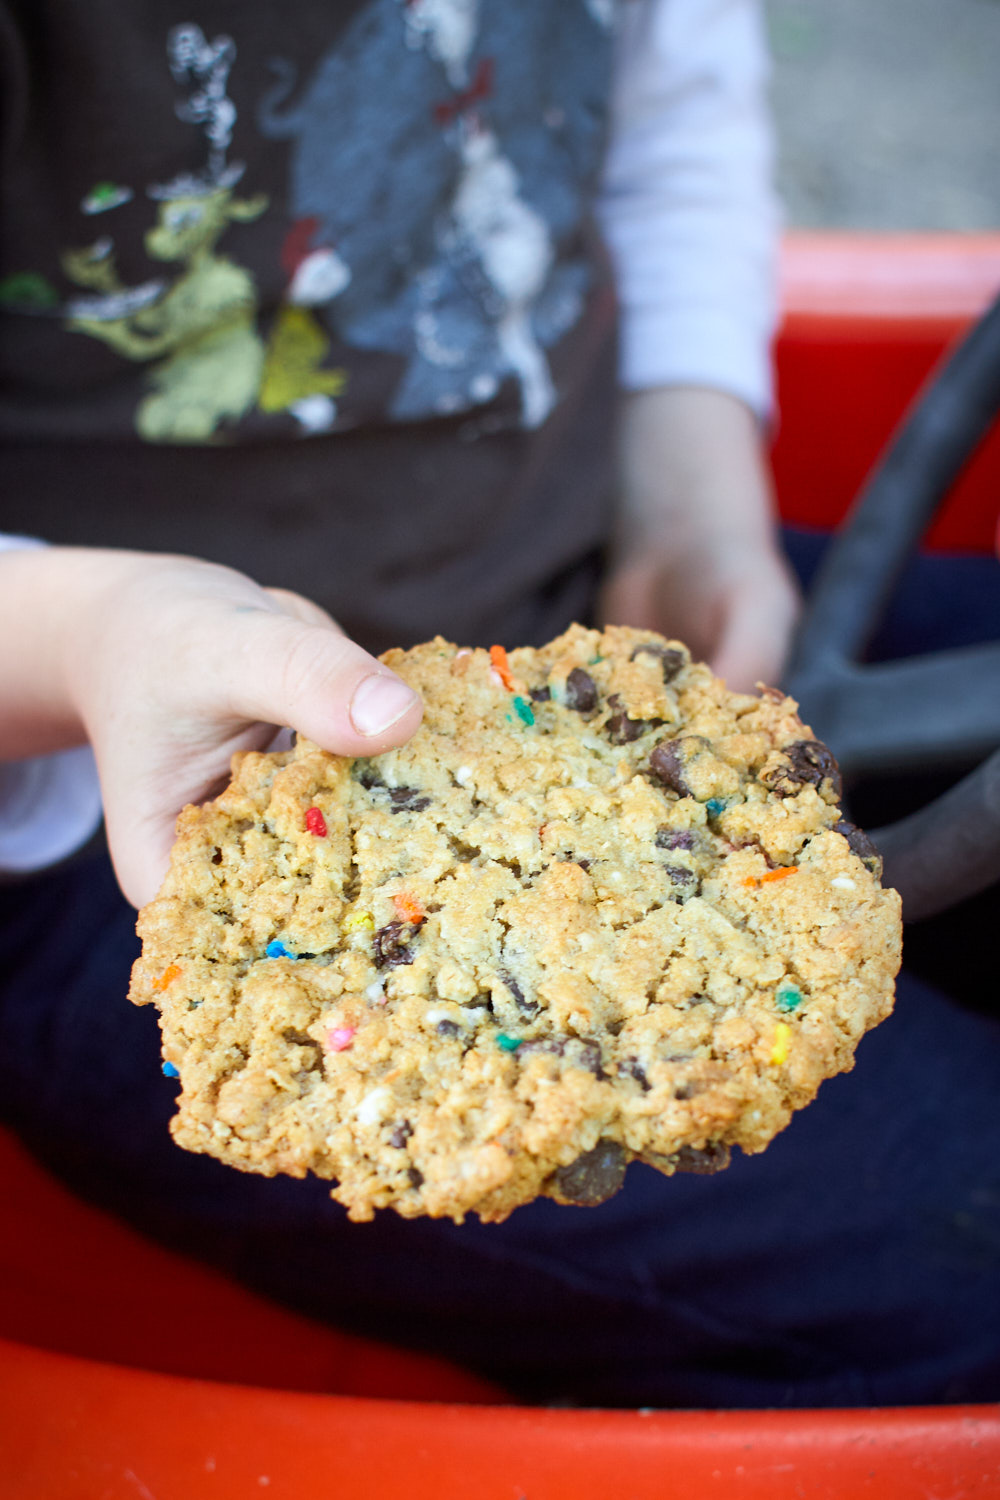 A large monster cookie held by a little boy